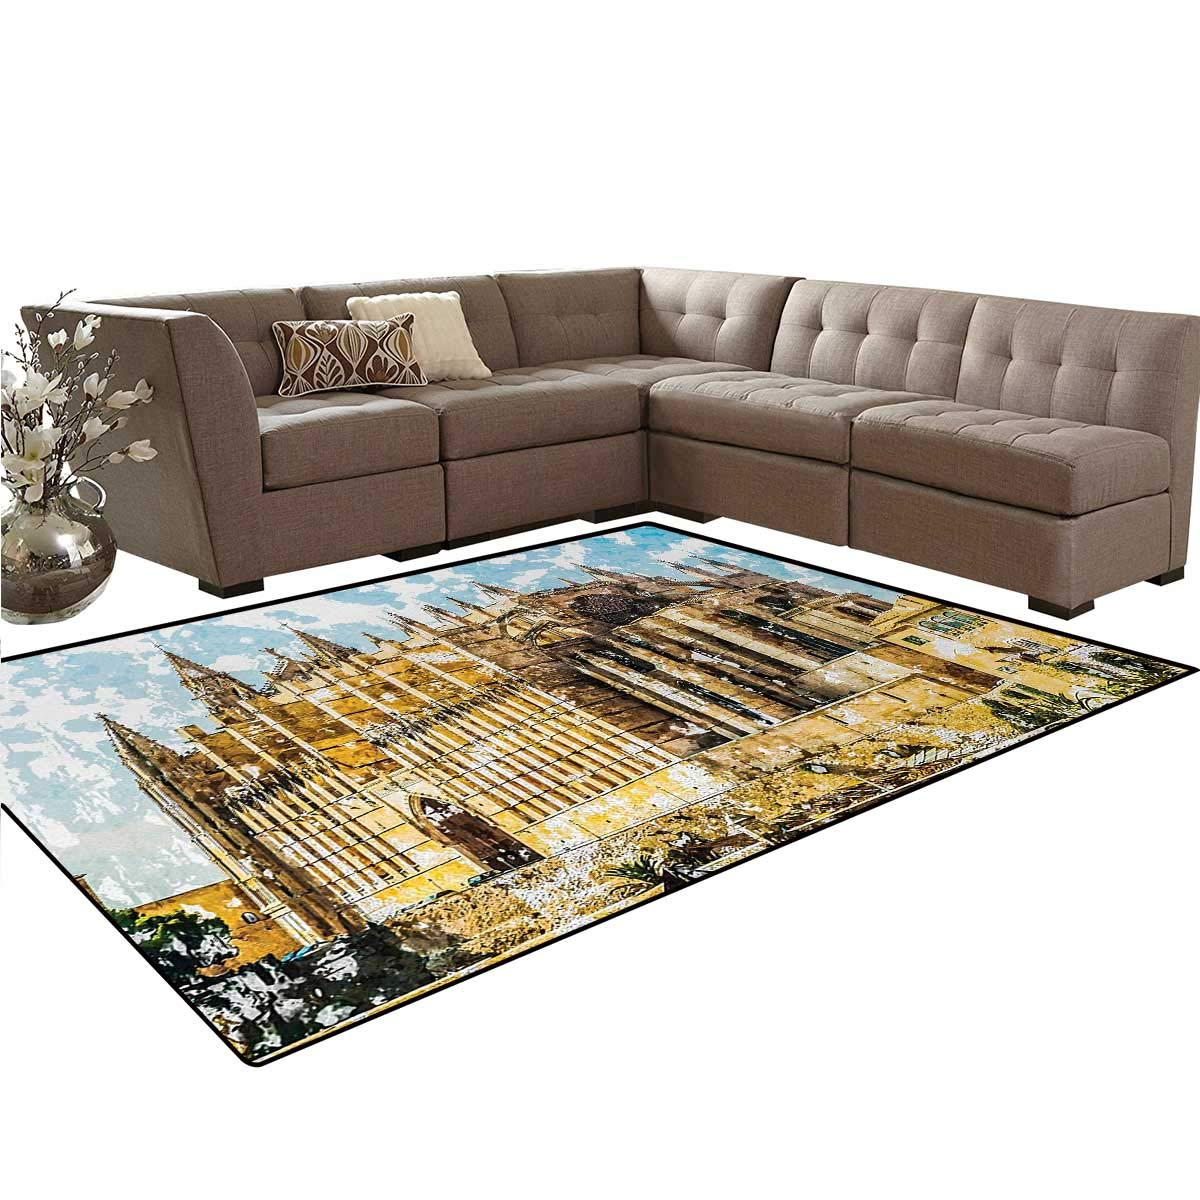 Amazon.com: Gothic, Rug, Big Gothic Building Sea Shore ...